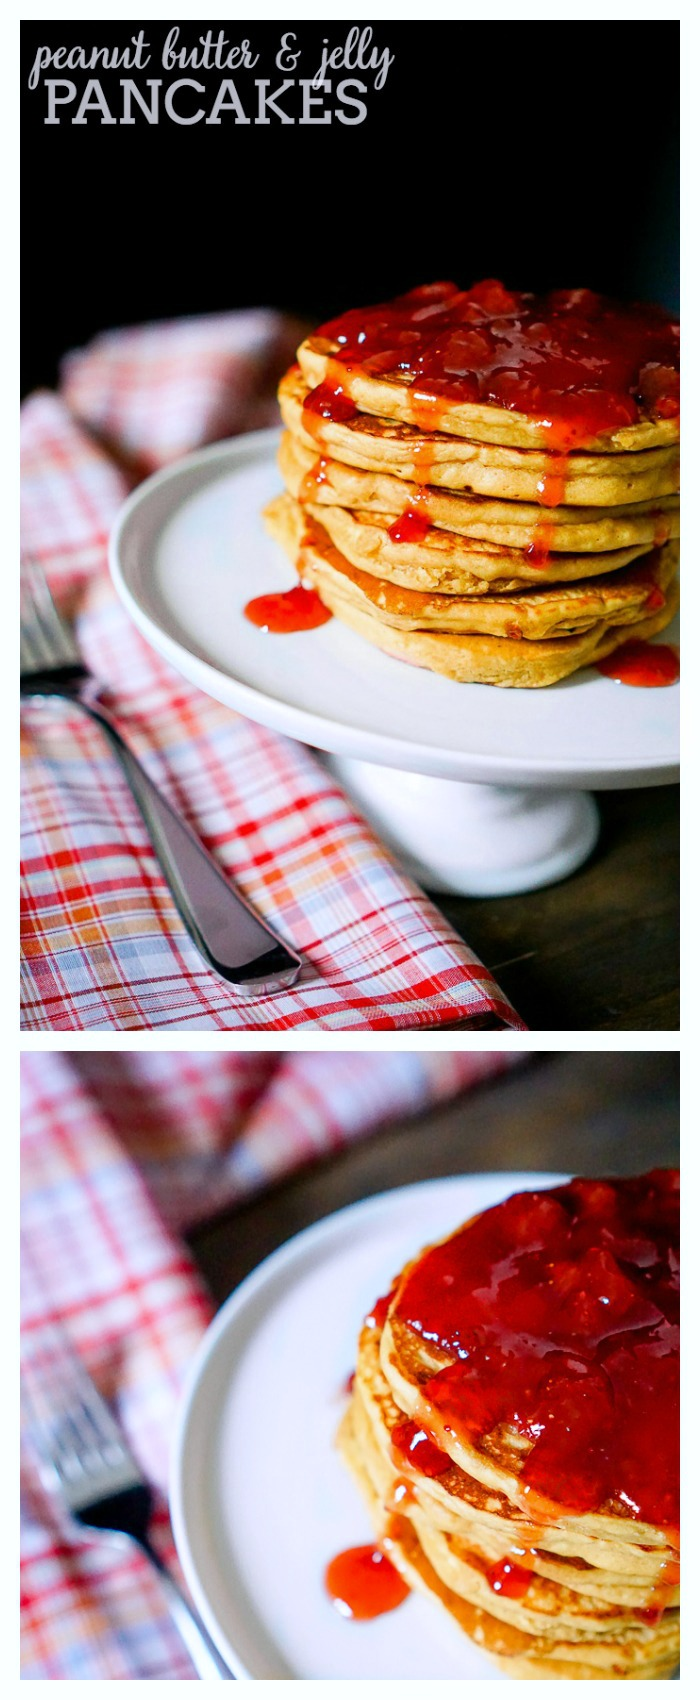 PEANUT BUTTER AND JELLY PANCAKES - A fun breakfast recipe and twist on the classic flavor combination! Enjoy a warm, fluffy peanut butter pancake with your favorite jelly on top! | The Love Nerds